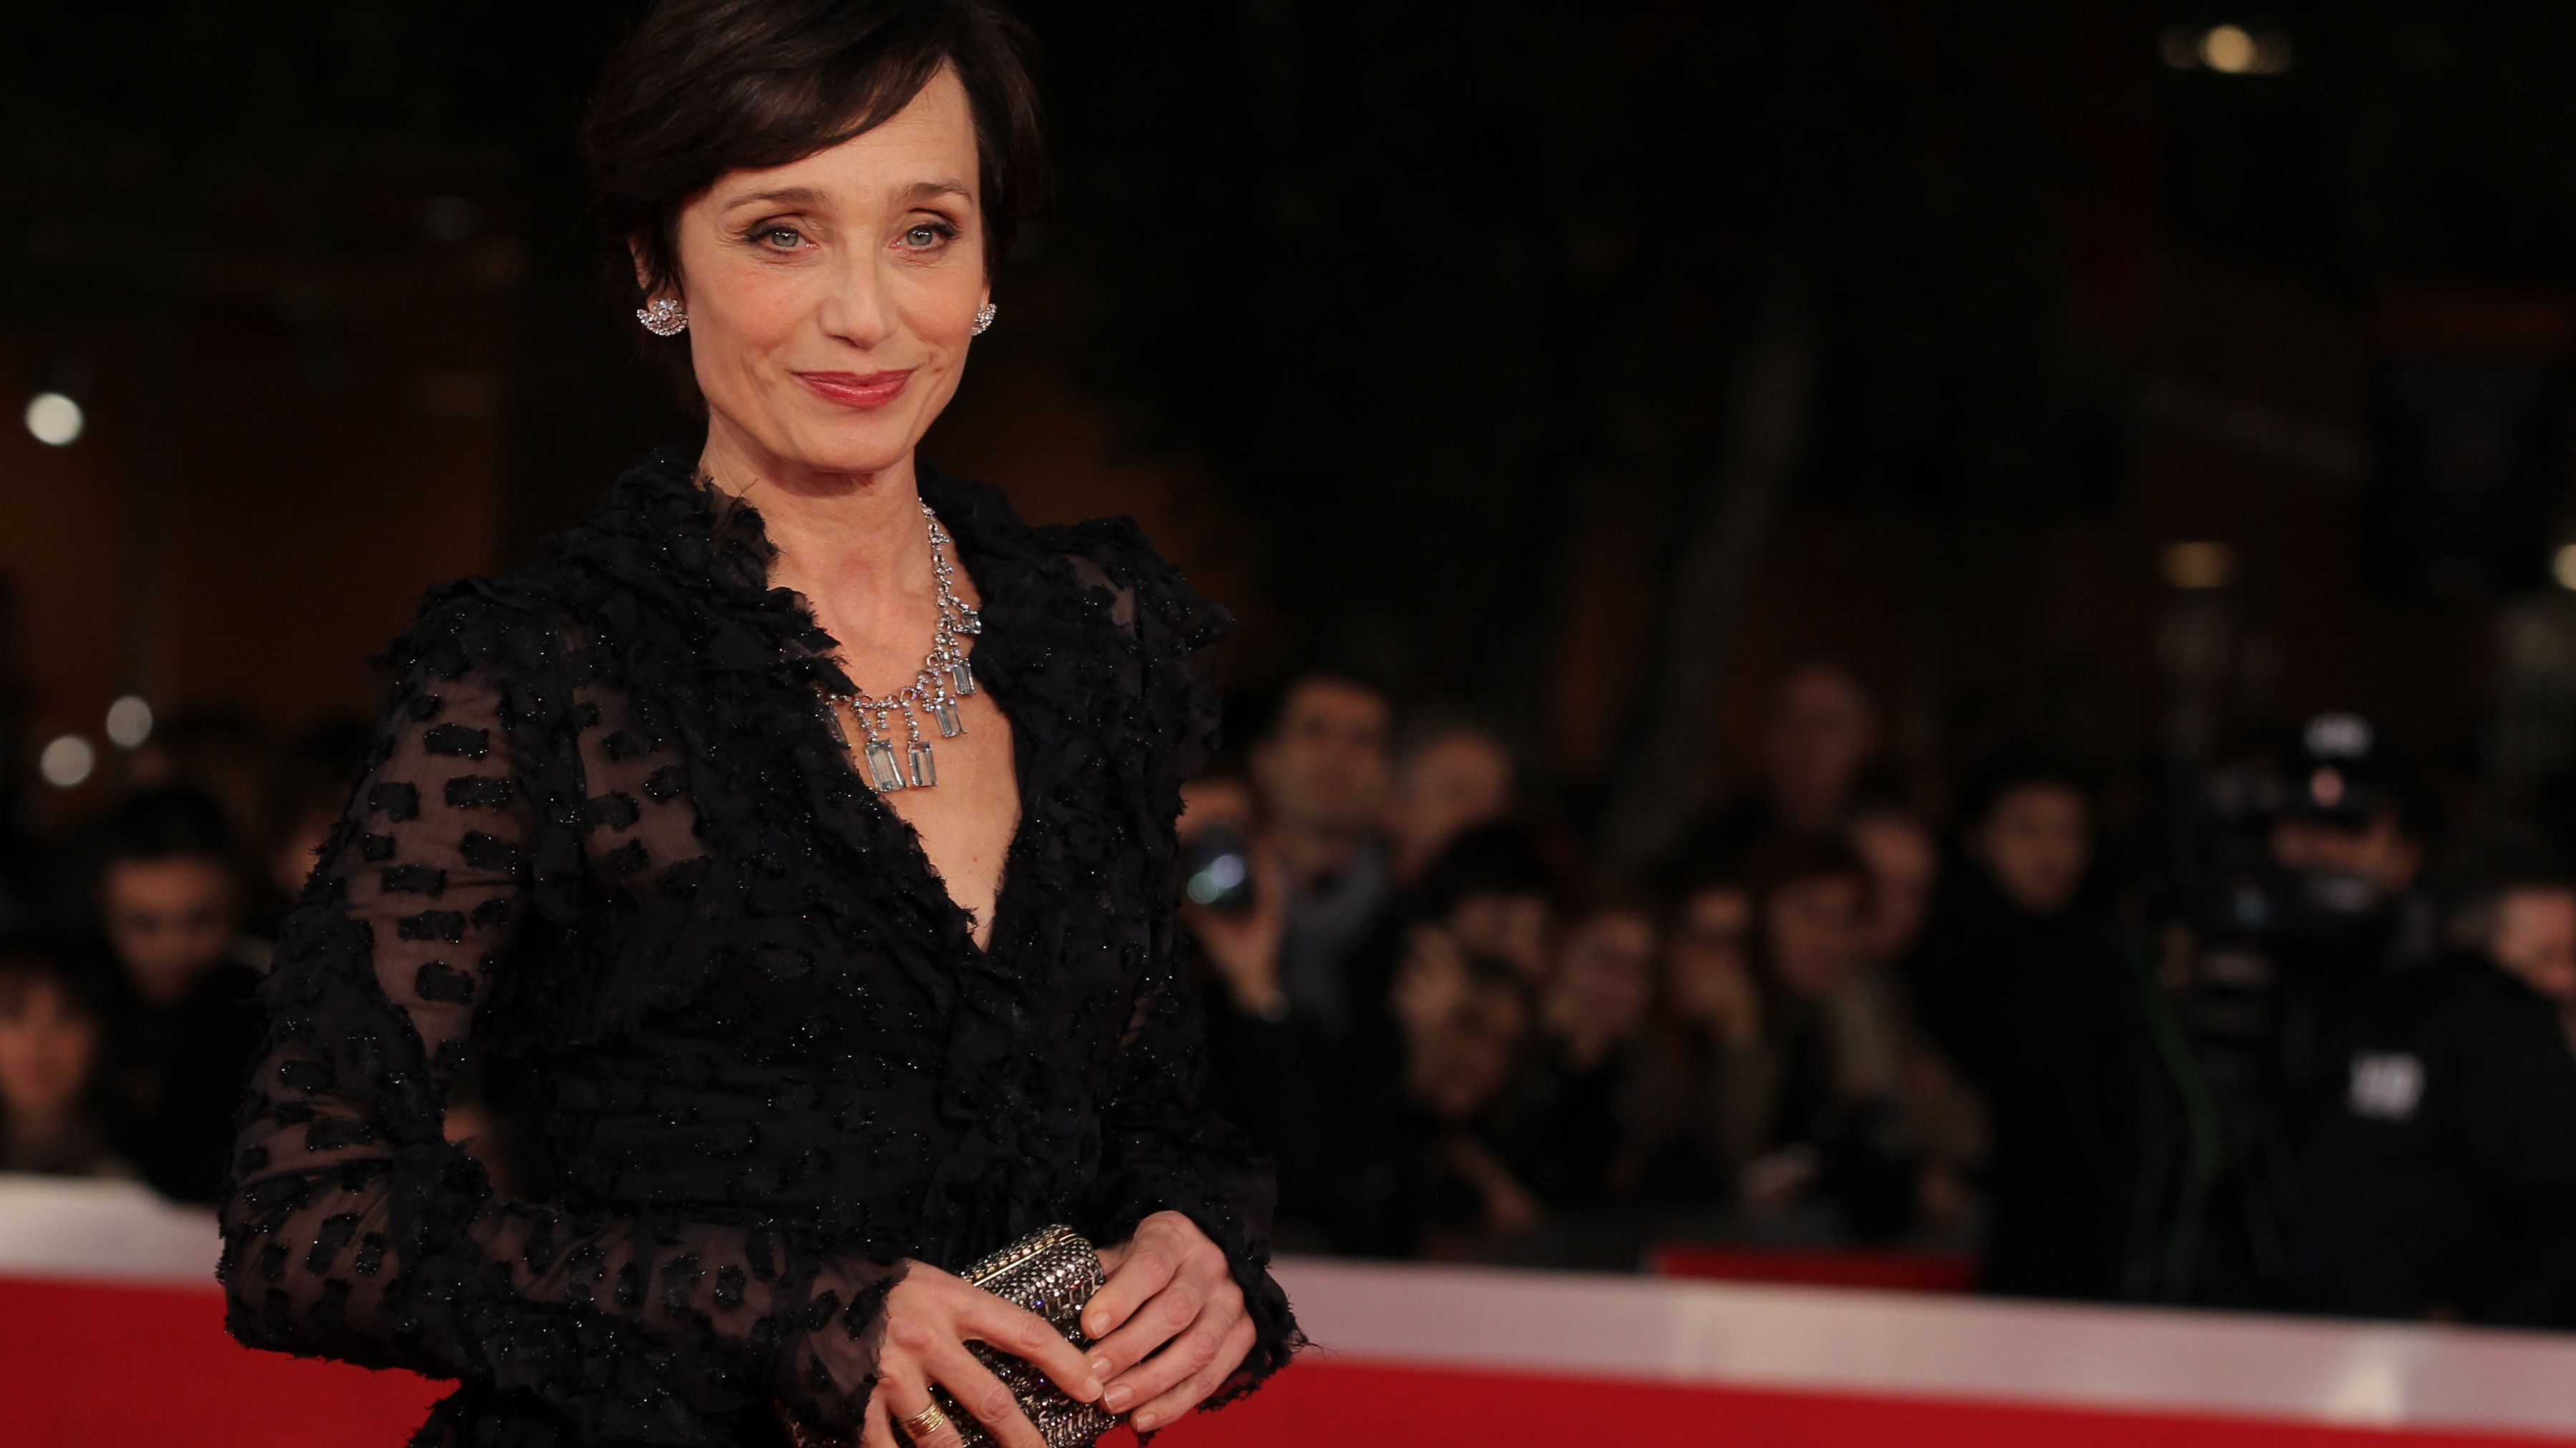 Kristin Scott Thomas Wallpapers Images Photos Pictures